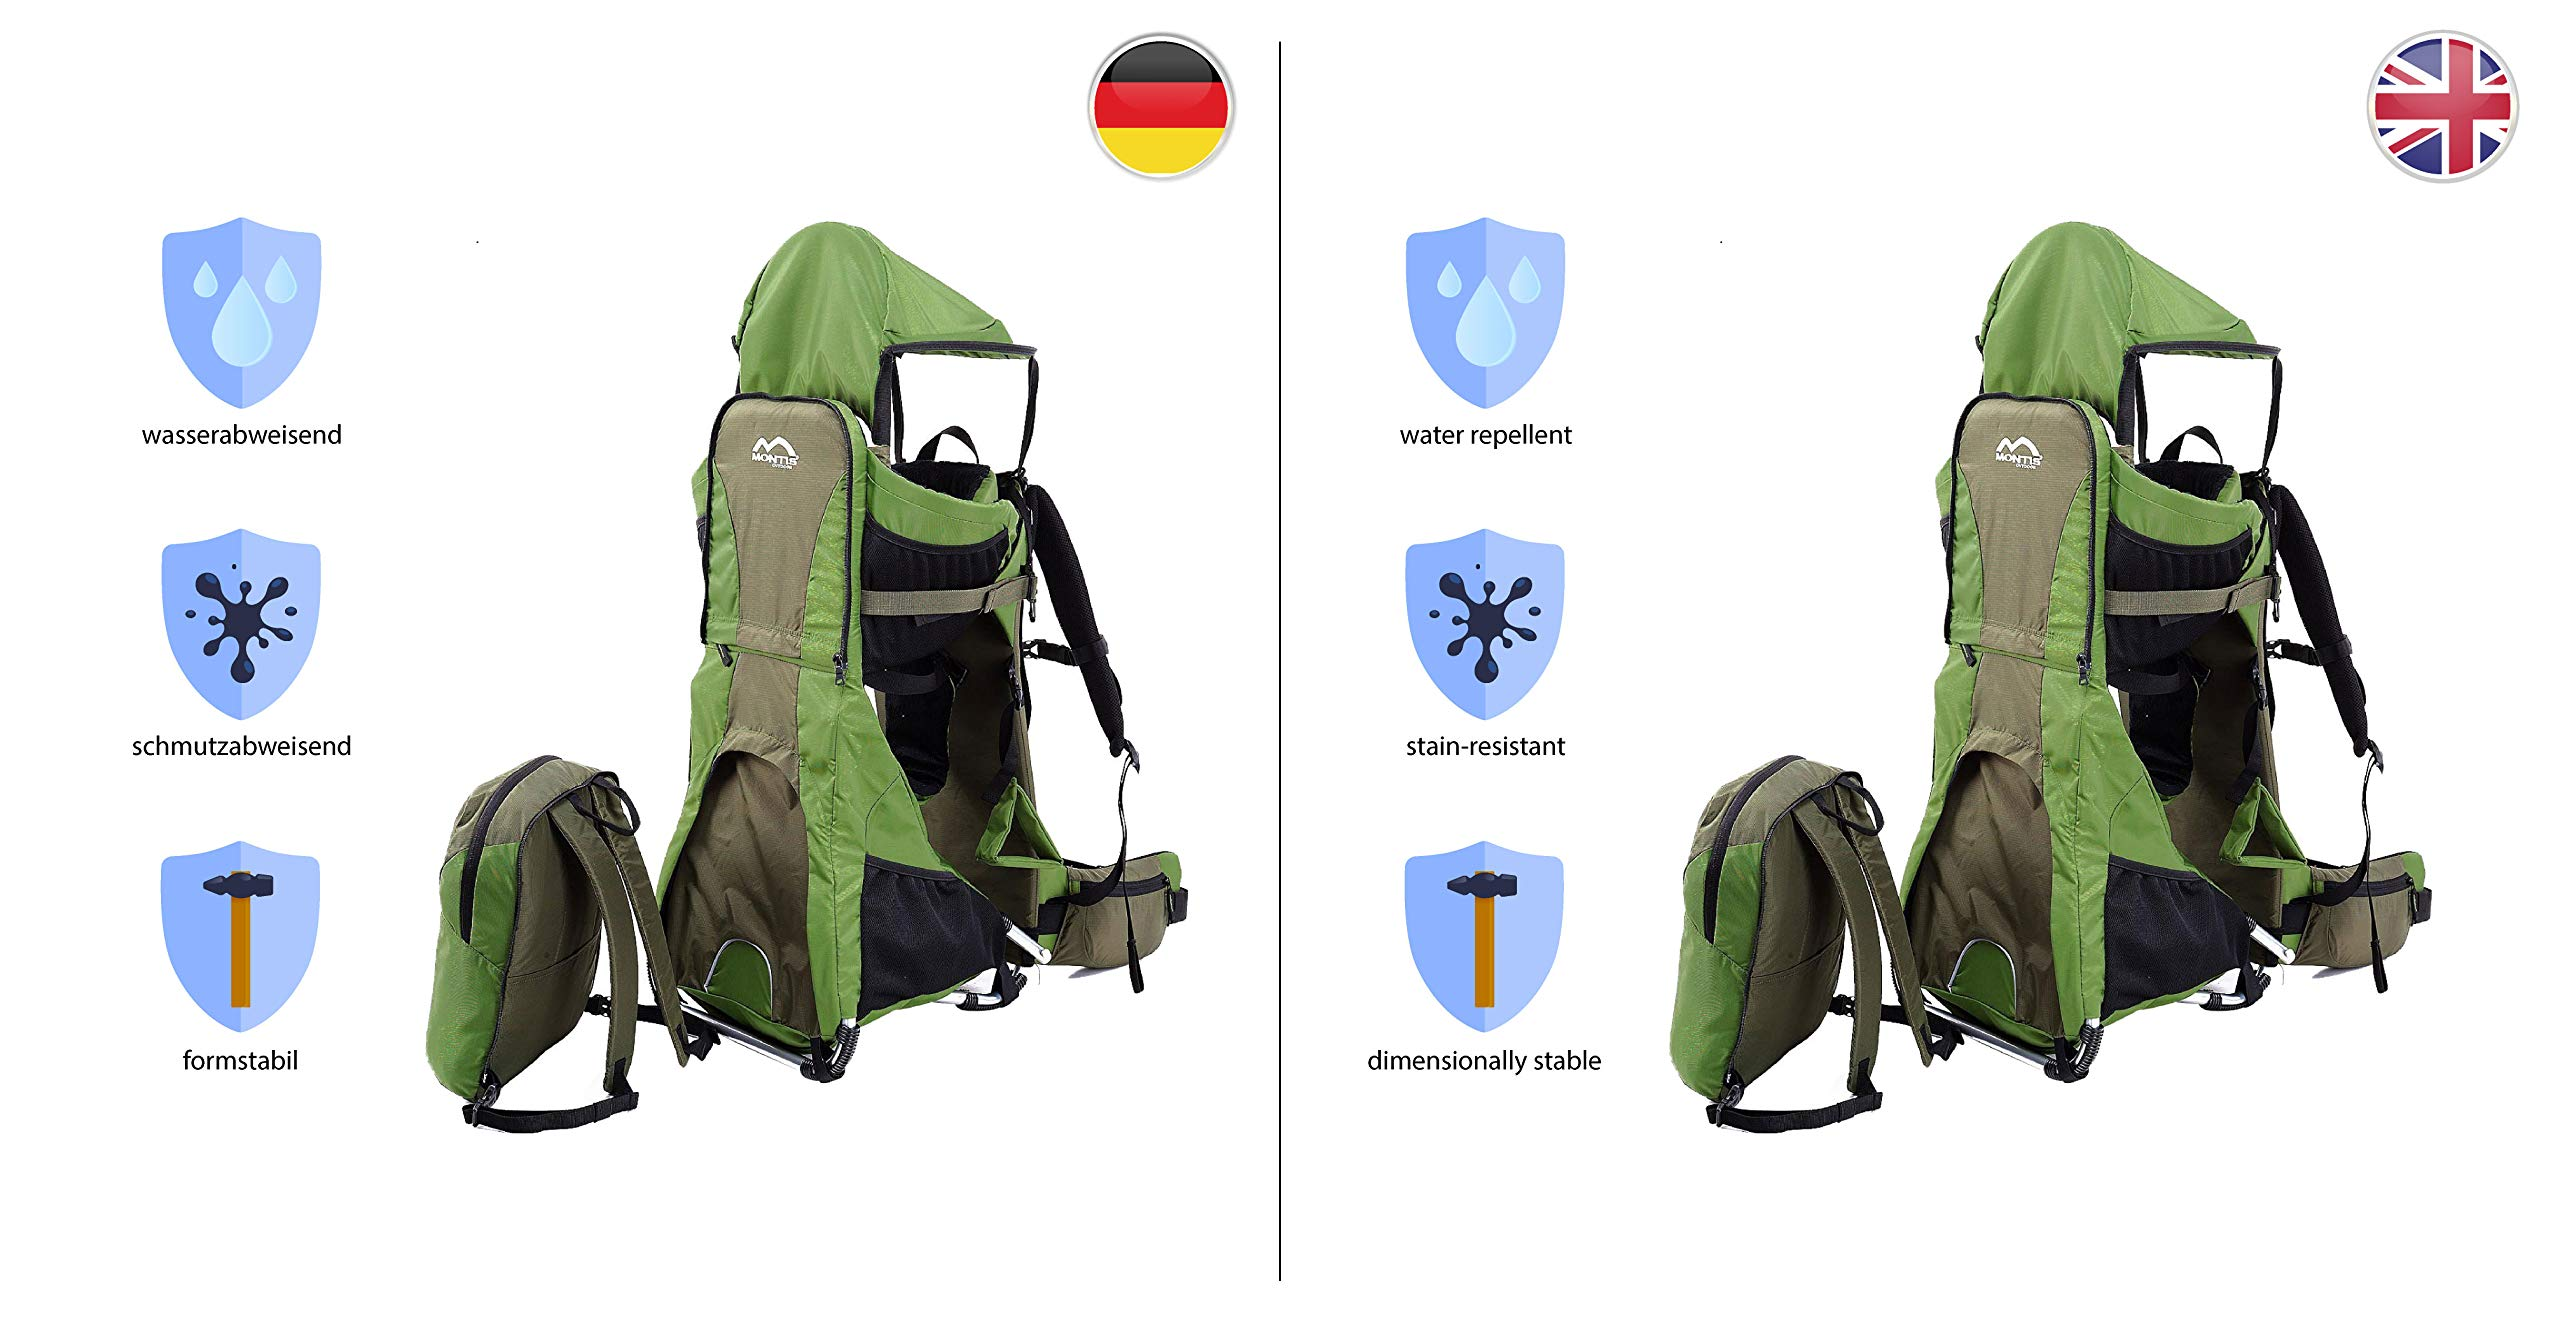 MONTIS RANGER PRO - Premium Backpack/Child Carrier - Holds up to 25kg M MONTIS OUTDOOR 89cm high, 37cm wide | Carries loads up to 25kg, seat bag 30L | Approx. 2.3kg (without extras) Easy-clean outer material | Fully-adjustable, padded 5-point child harness Super soft plush lining, raised wind guard, can be loaded from both sides | Fully-adjustable carry support system, additional ergonomic options for women | Comfortable waist belt for extended wearing with side pockets 5